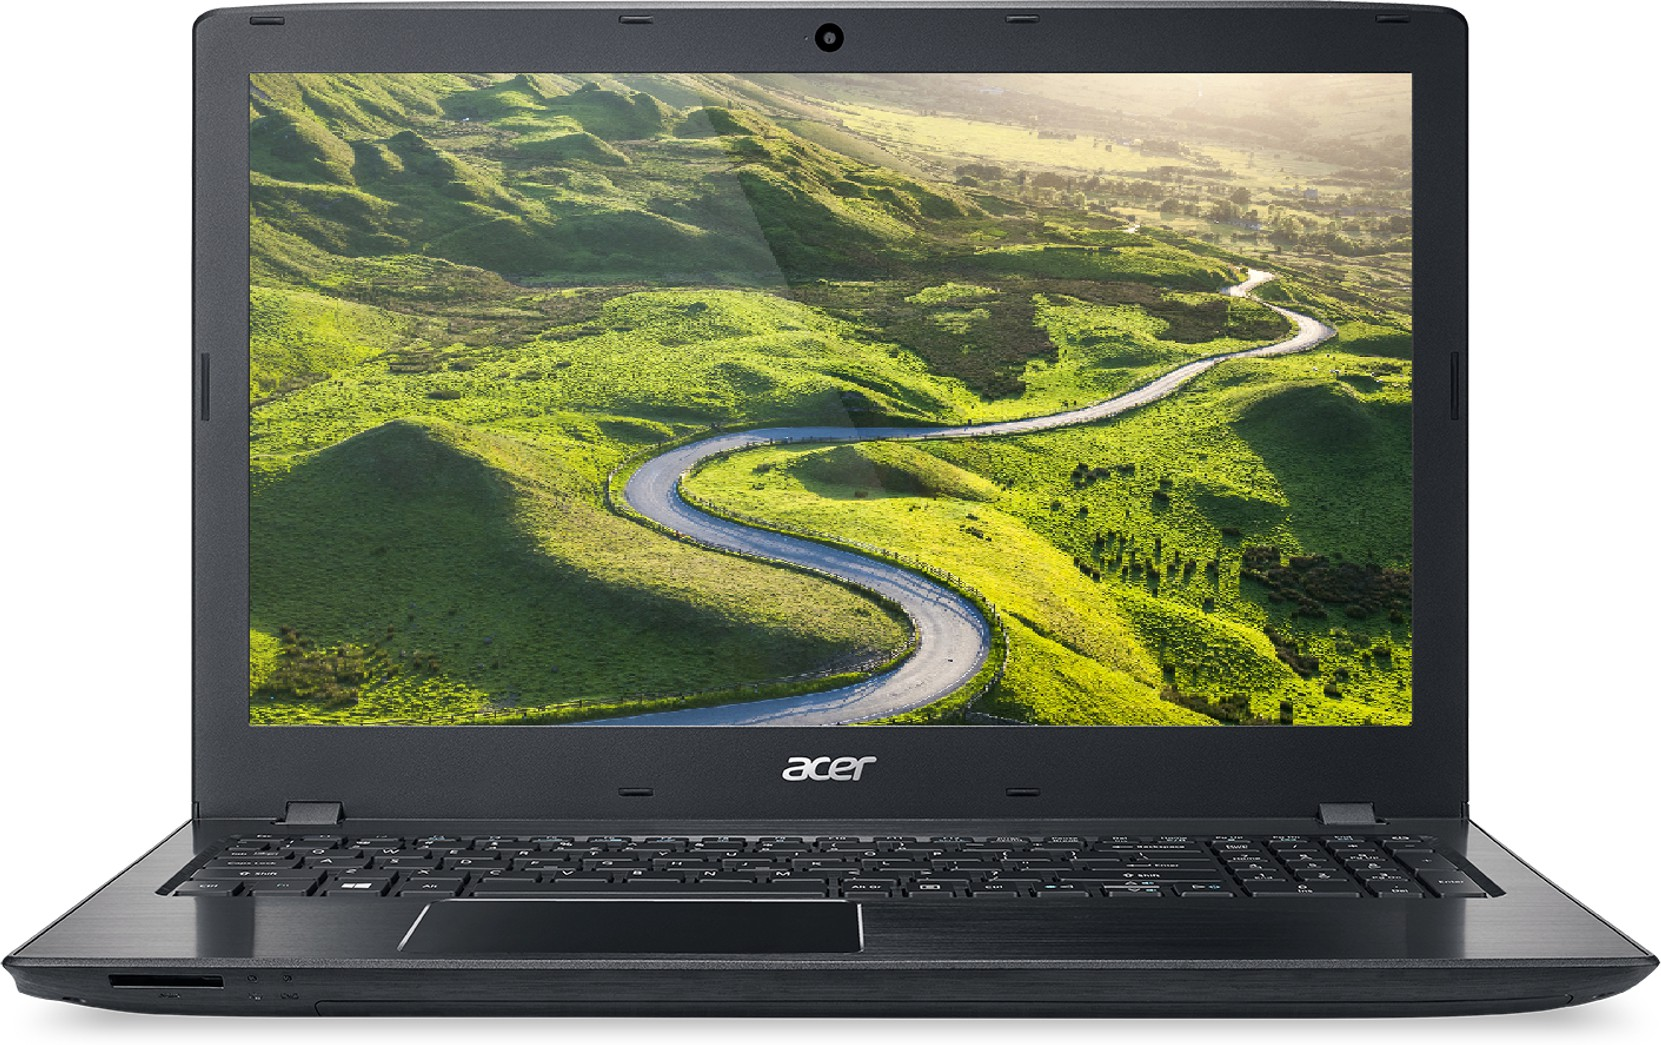 Deals - Jodhpur - From ₹36990 <br> Intel 7th Gen Laptops<br> Category - computers<br> Business - Flipkart.com